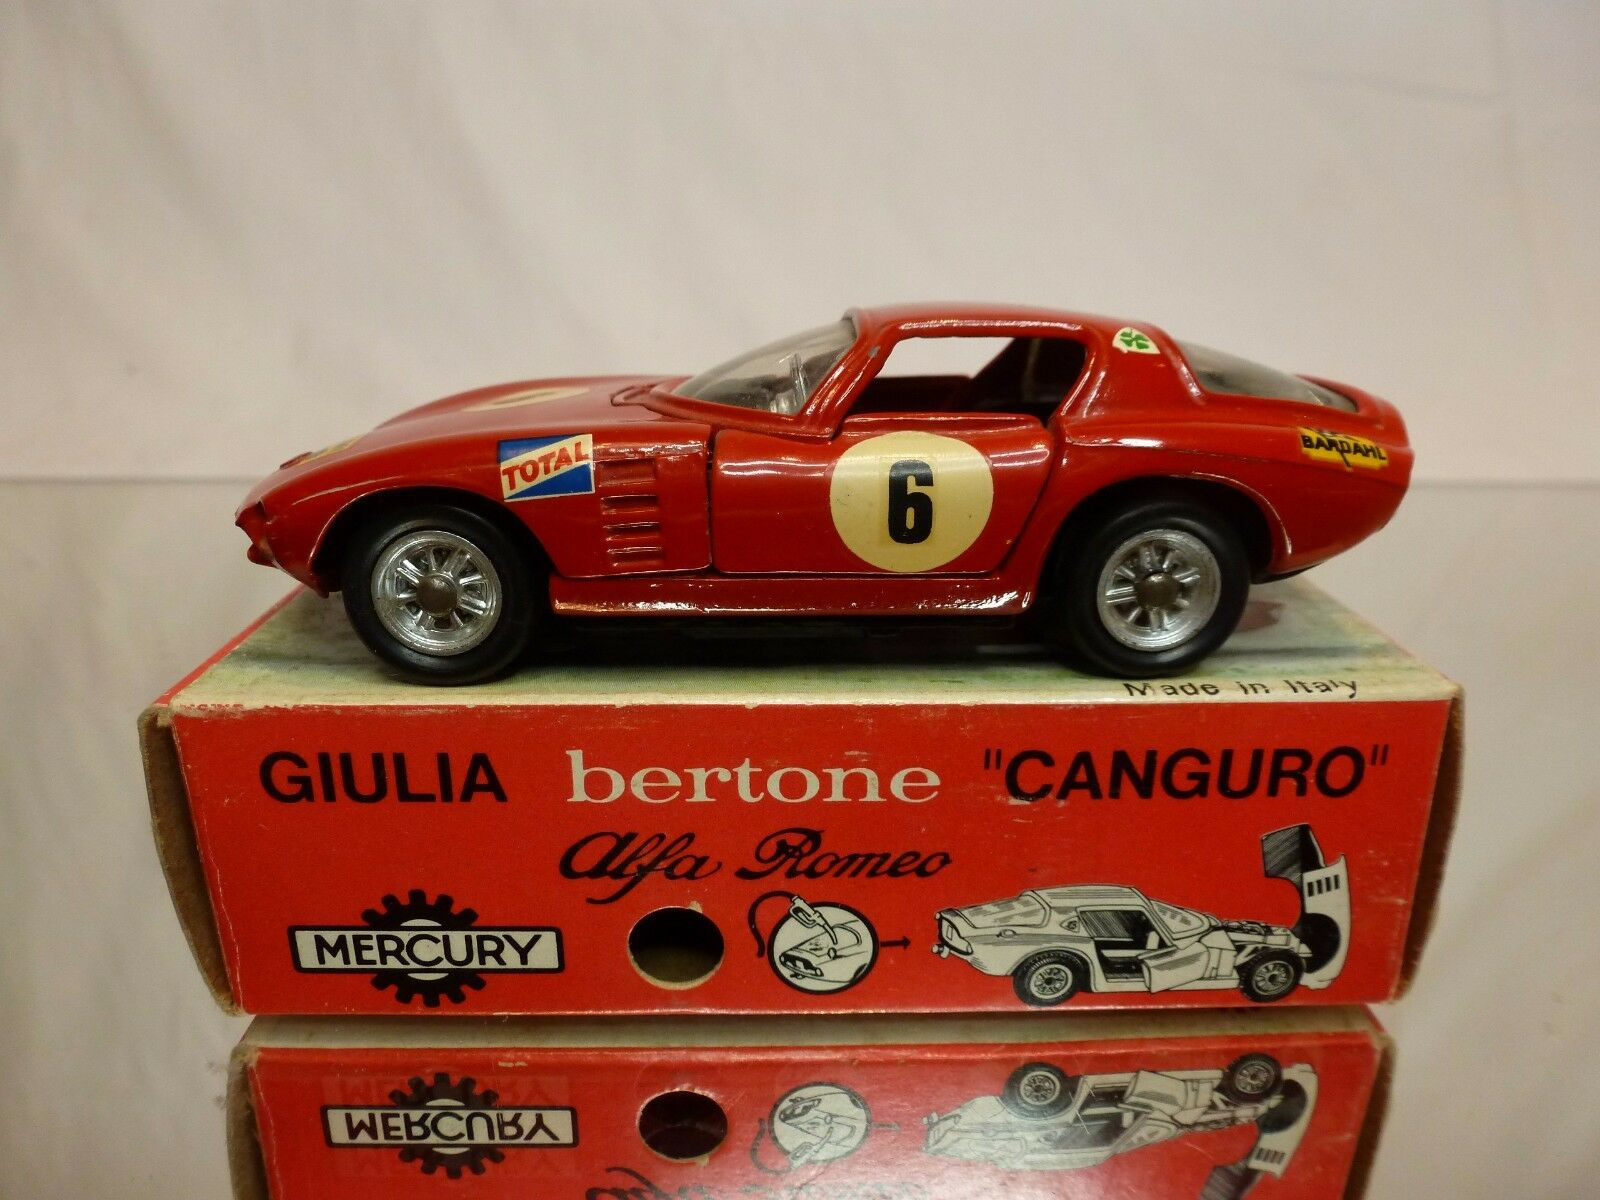 MERCURY 29 ALFA ROMEO GIULIA BERTONE CANGURO - rosso 1:43 1:43 1:43 - GOOD CONDITION IN BOX 02bdde